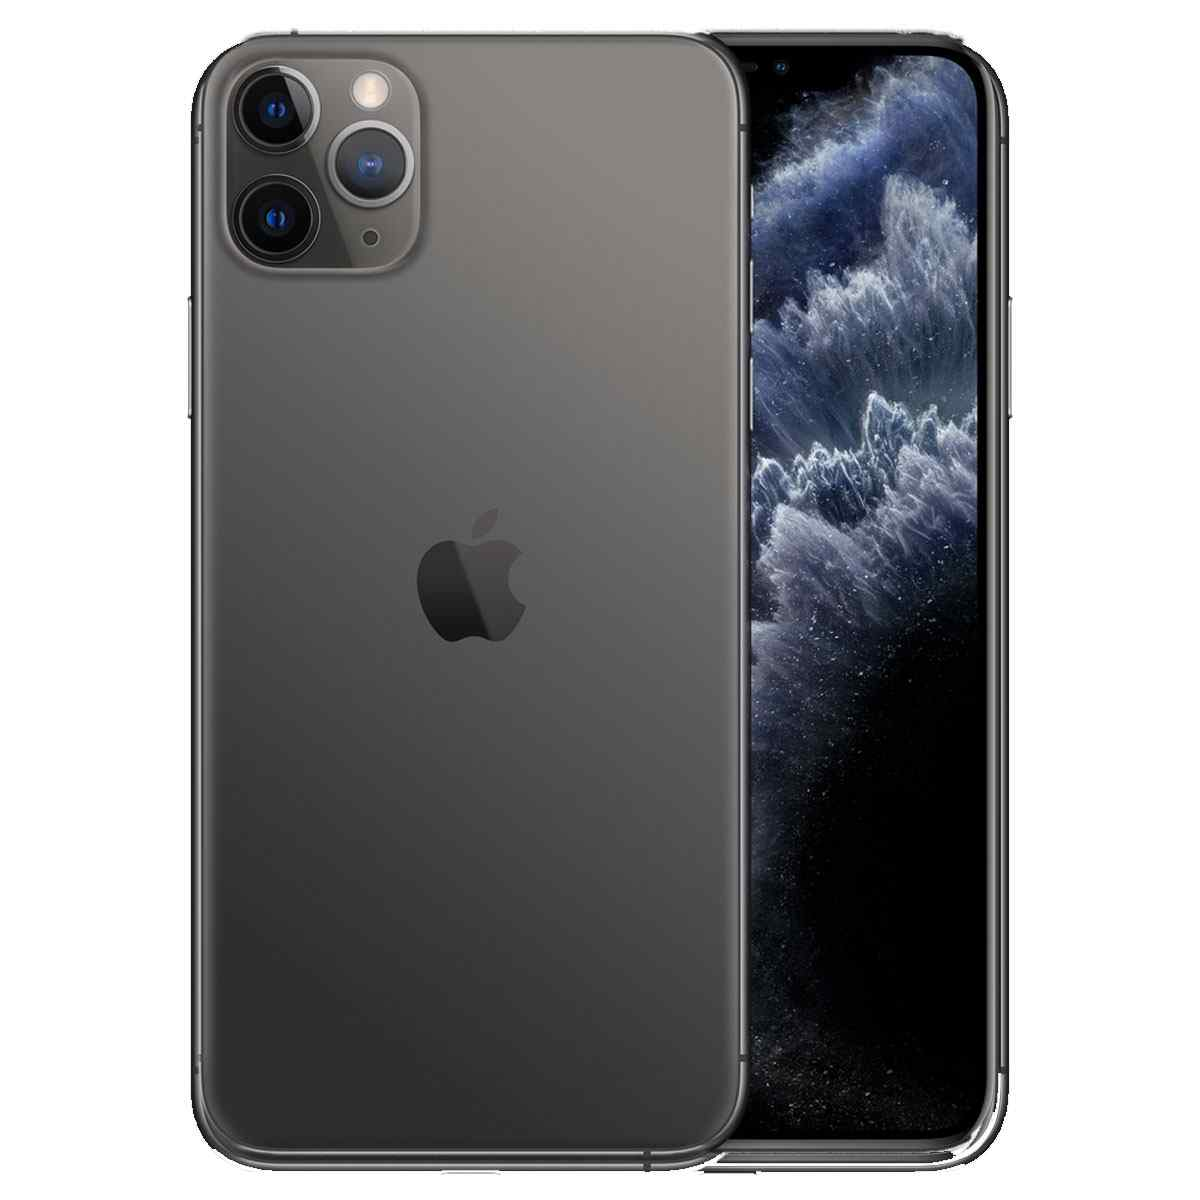 IPHONE 11 PRO MAX 512 GB SPACE GRAY